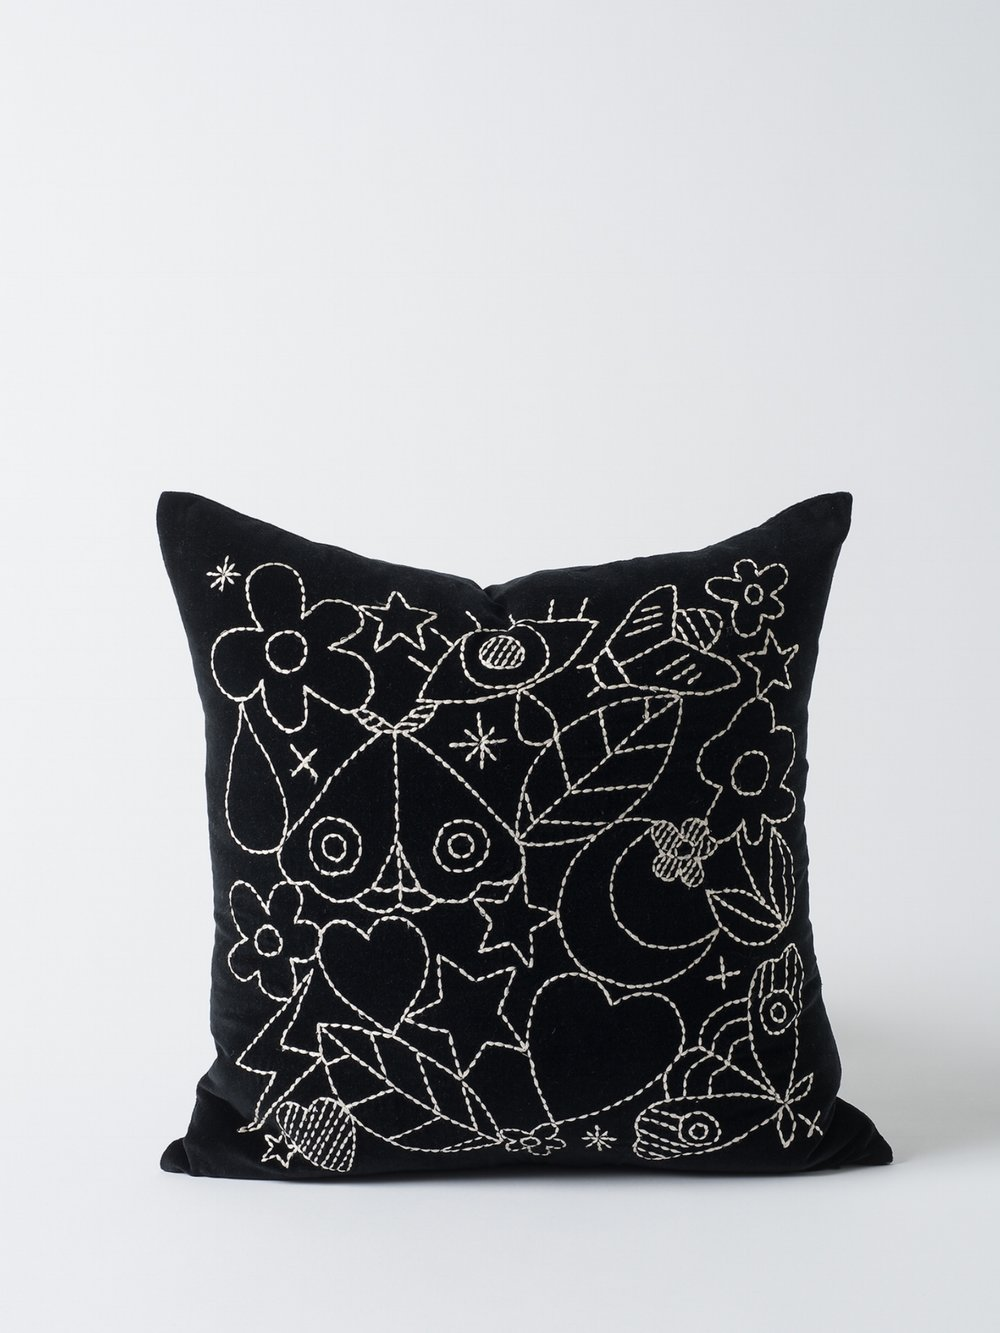 Dreamers Embroidered Cushion Cover $79.90